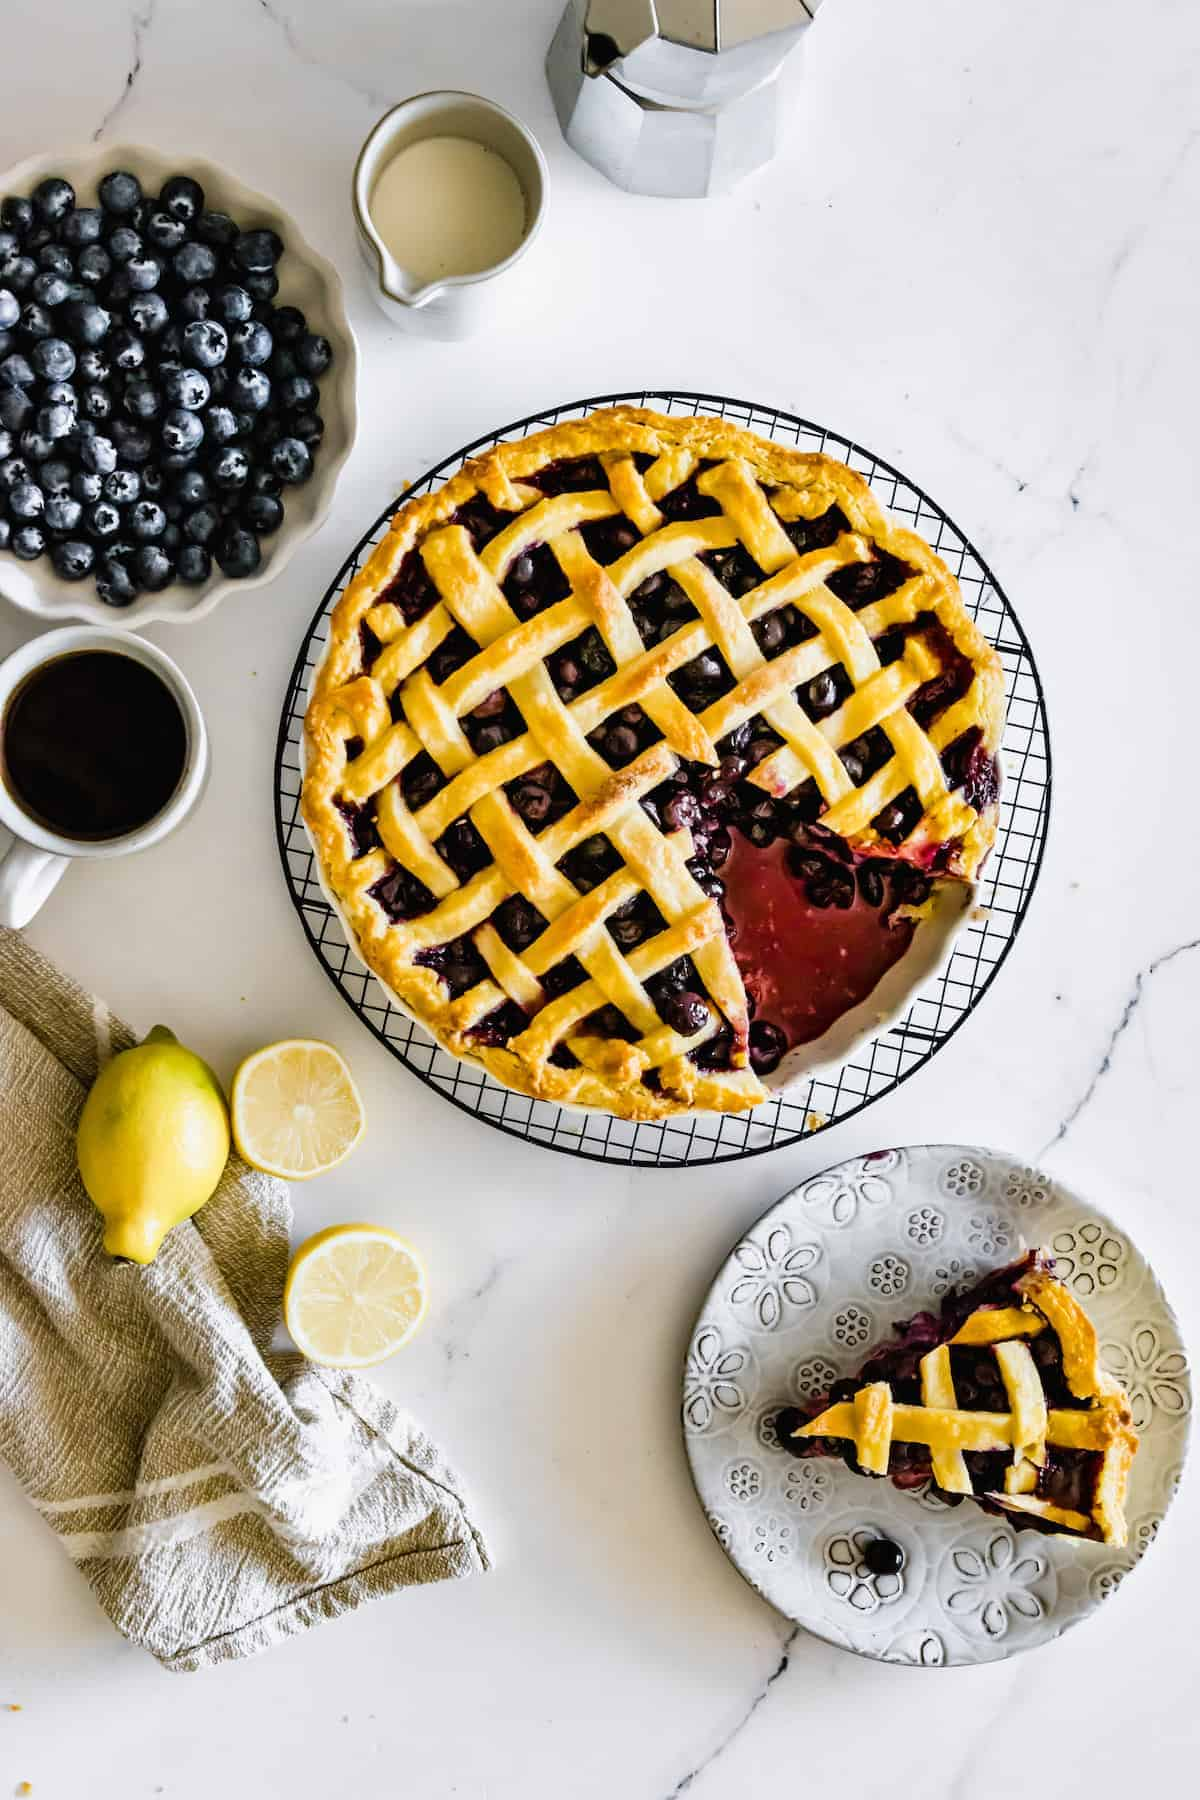 A Gluten-Free Blueberry Pie on a Metal Cooling Rack with One Piece on a Flowery Plate